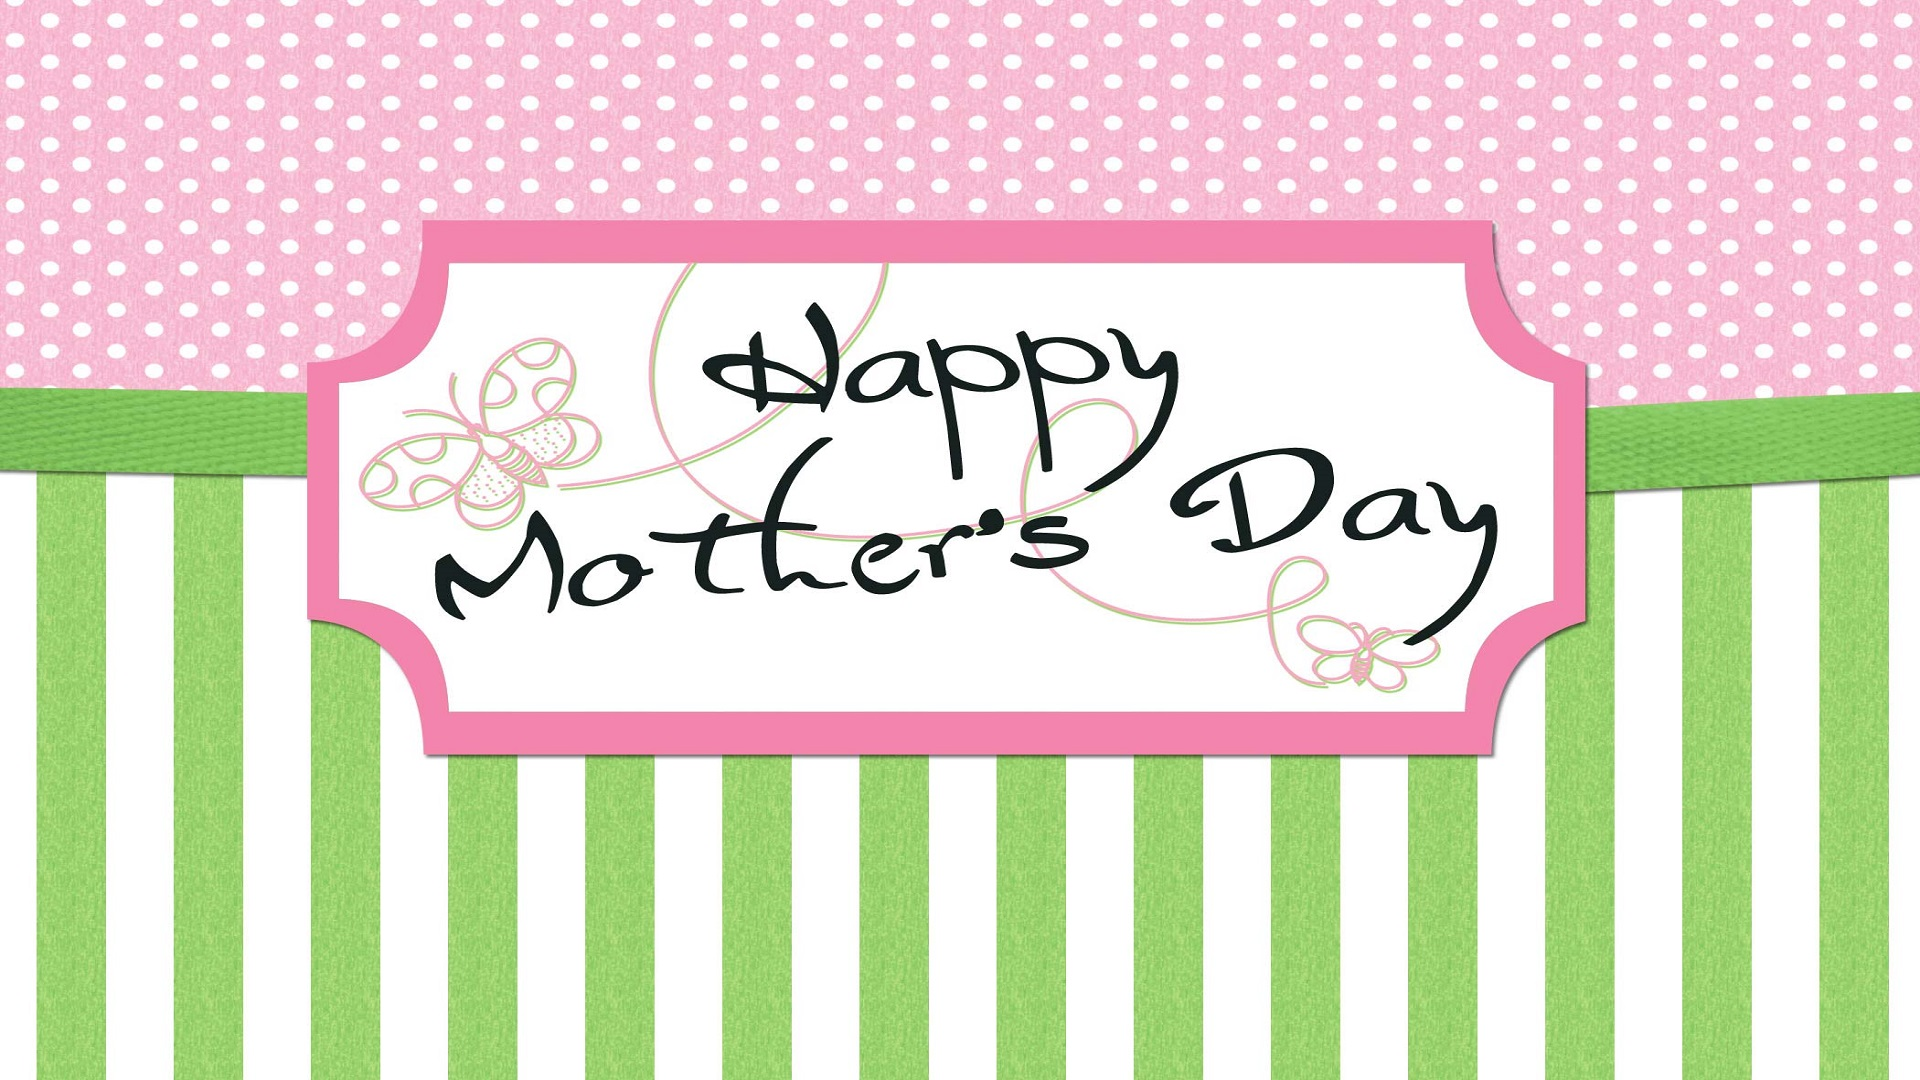 Happy Mothers Day 2015 Images For What New Calendar Template Site 1920x1080